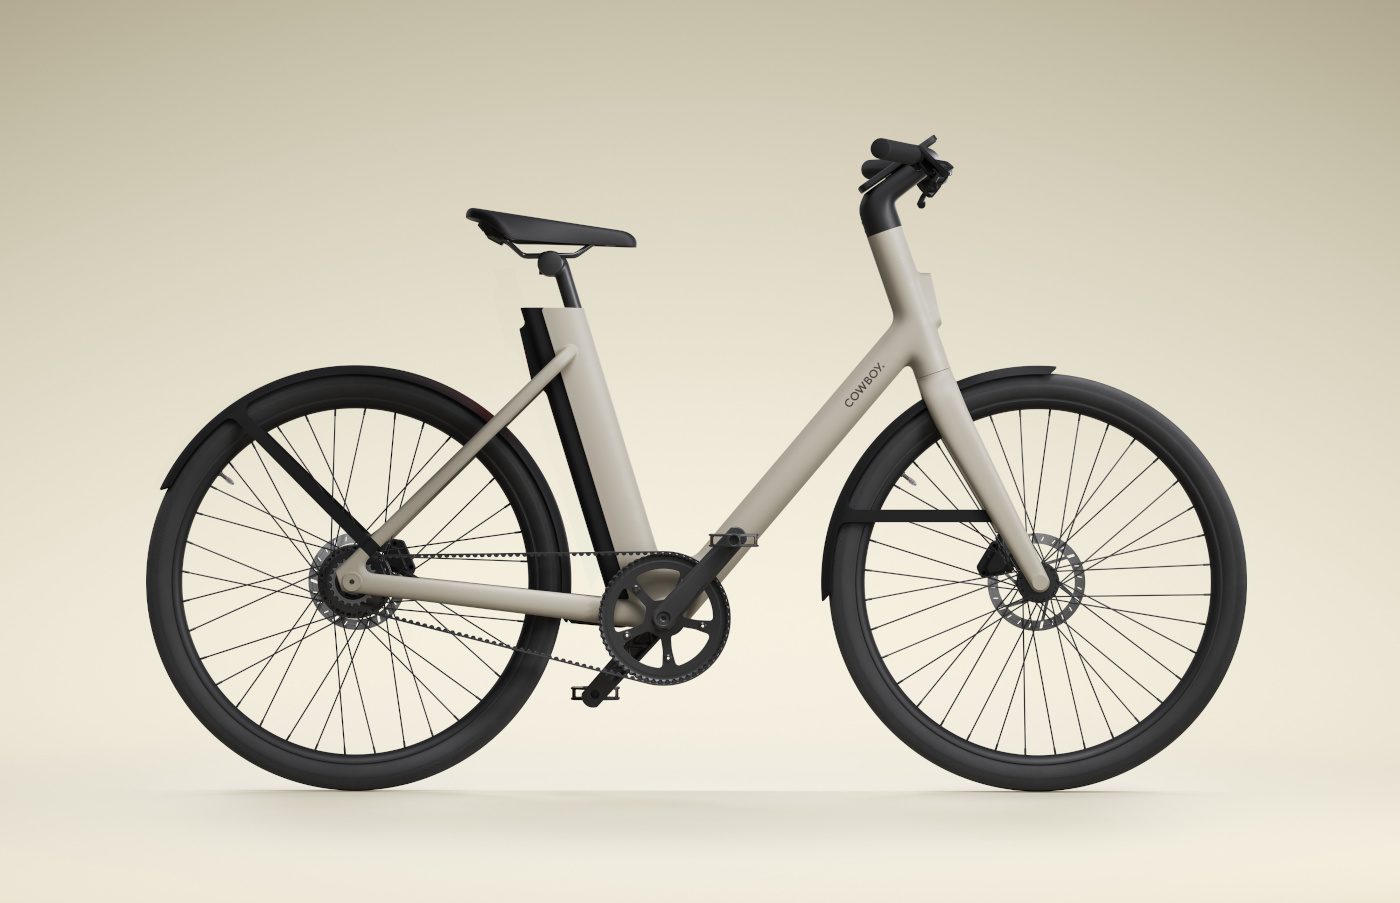 Cowboy 4 electric bike launches with a step-through model - Engadget